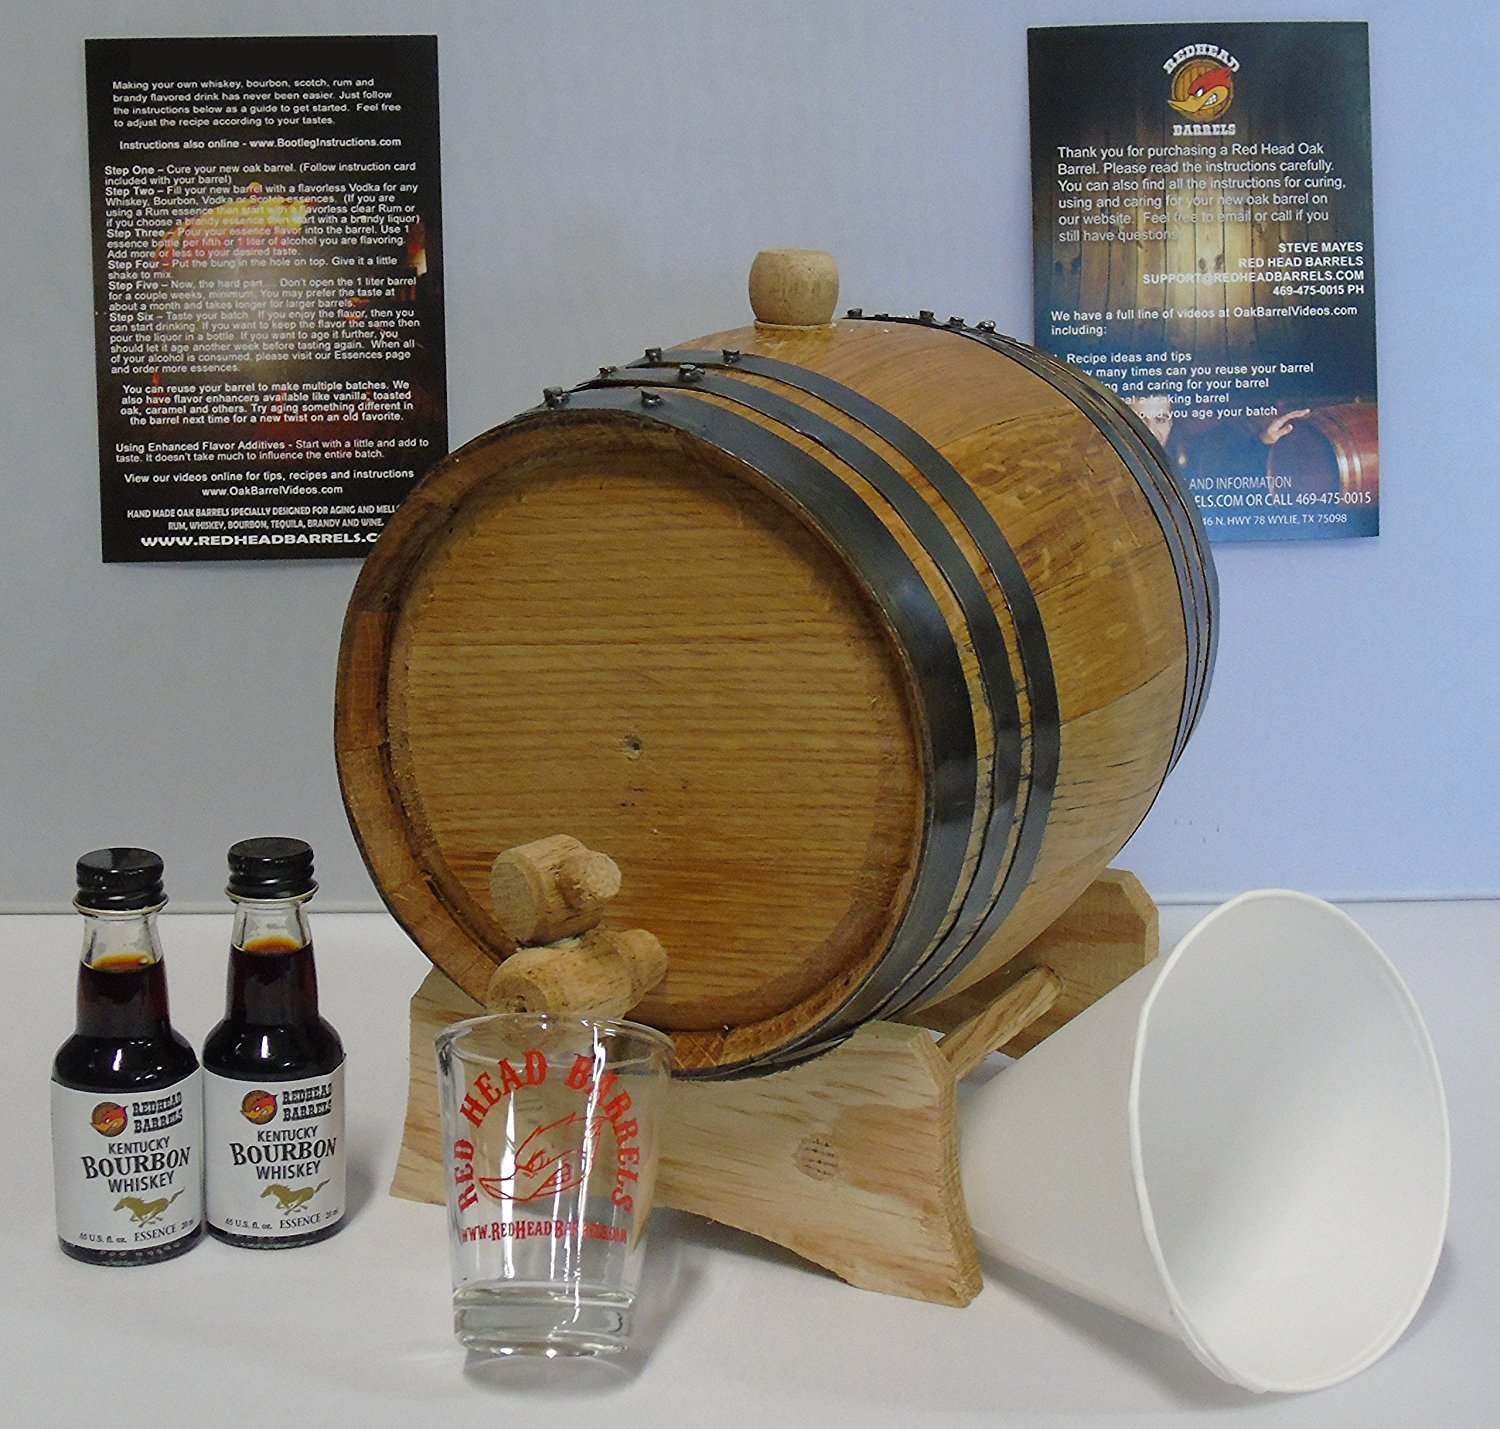 Barrel with your own hands 13